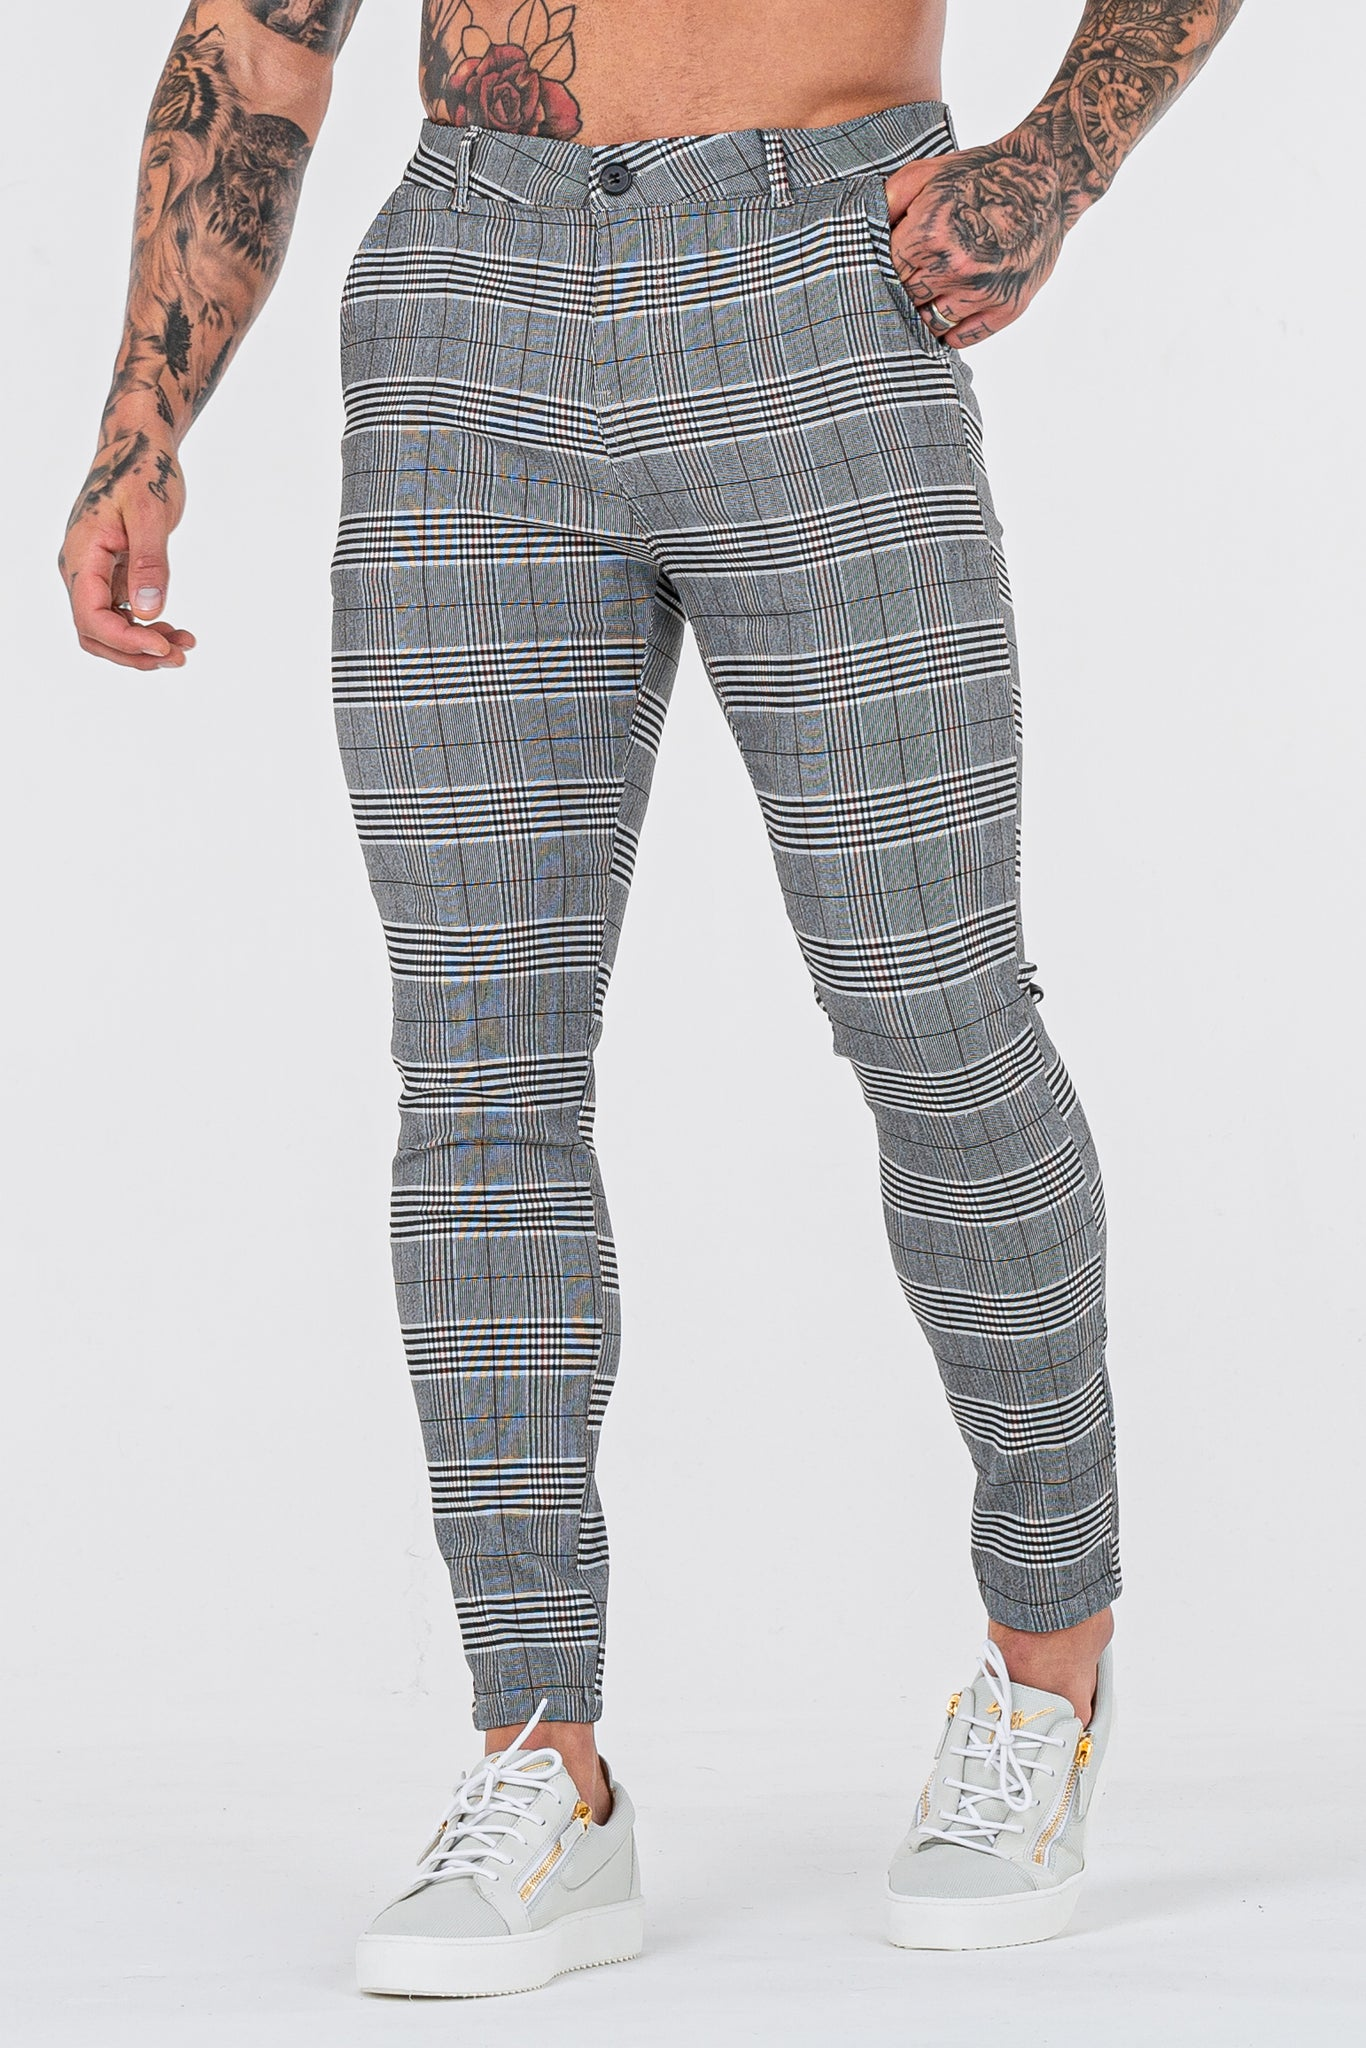 THE SIGNATURE TROUSERS - GREY/BLACK - ICON. AMSTERDAM